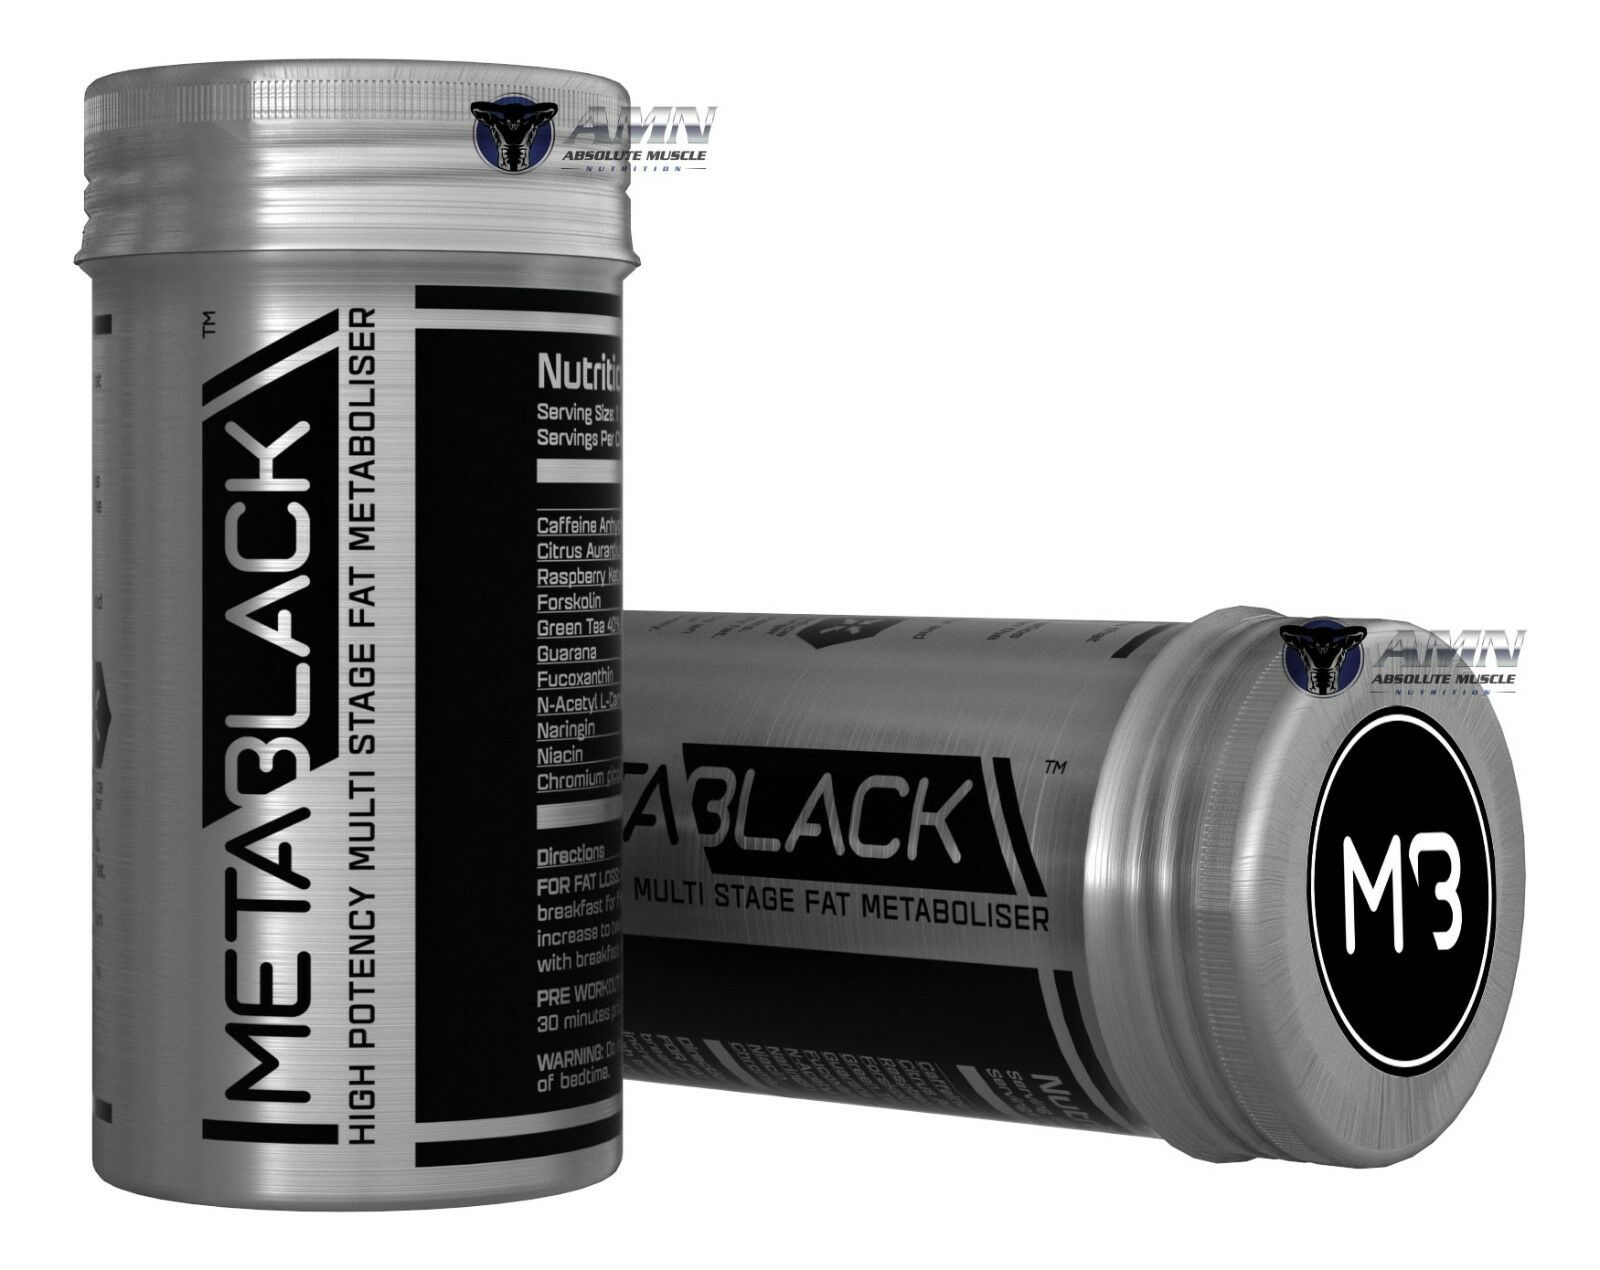 Bcaa Kick Body Attack details about metablack- m3 - 60 capsule x 2 - high potency fat metaboliser